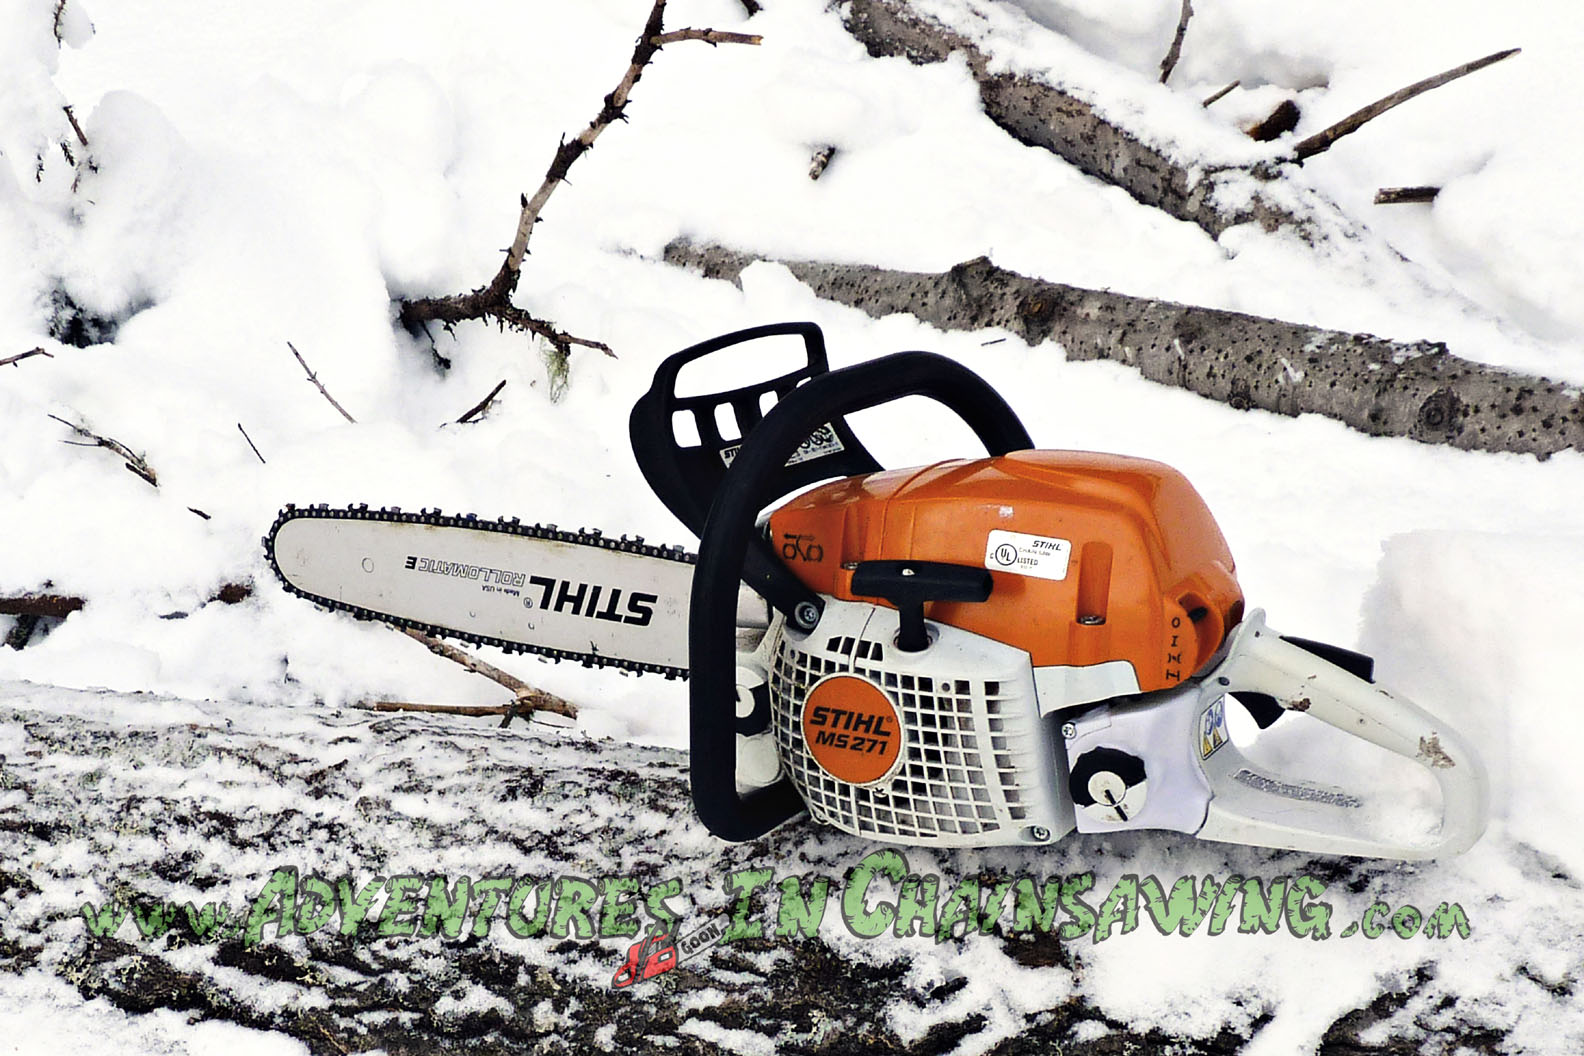 When choosing a chainsaw, look at the Stihl MS 271